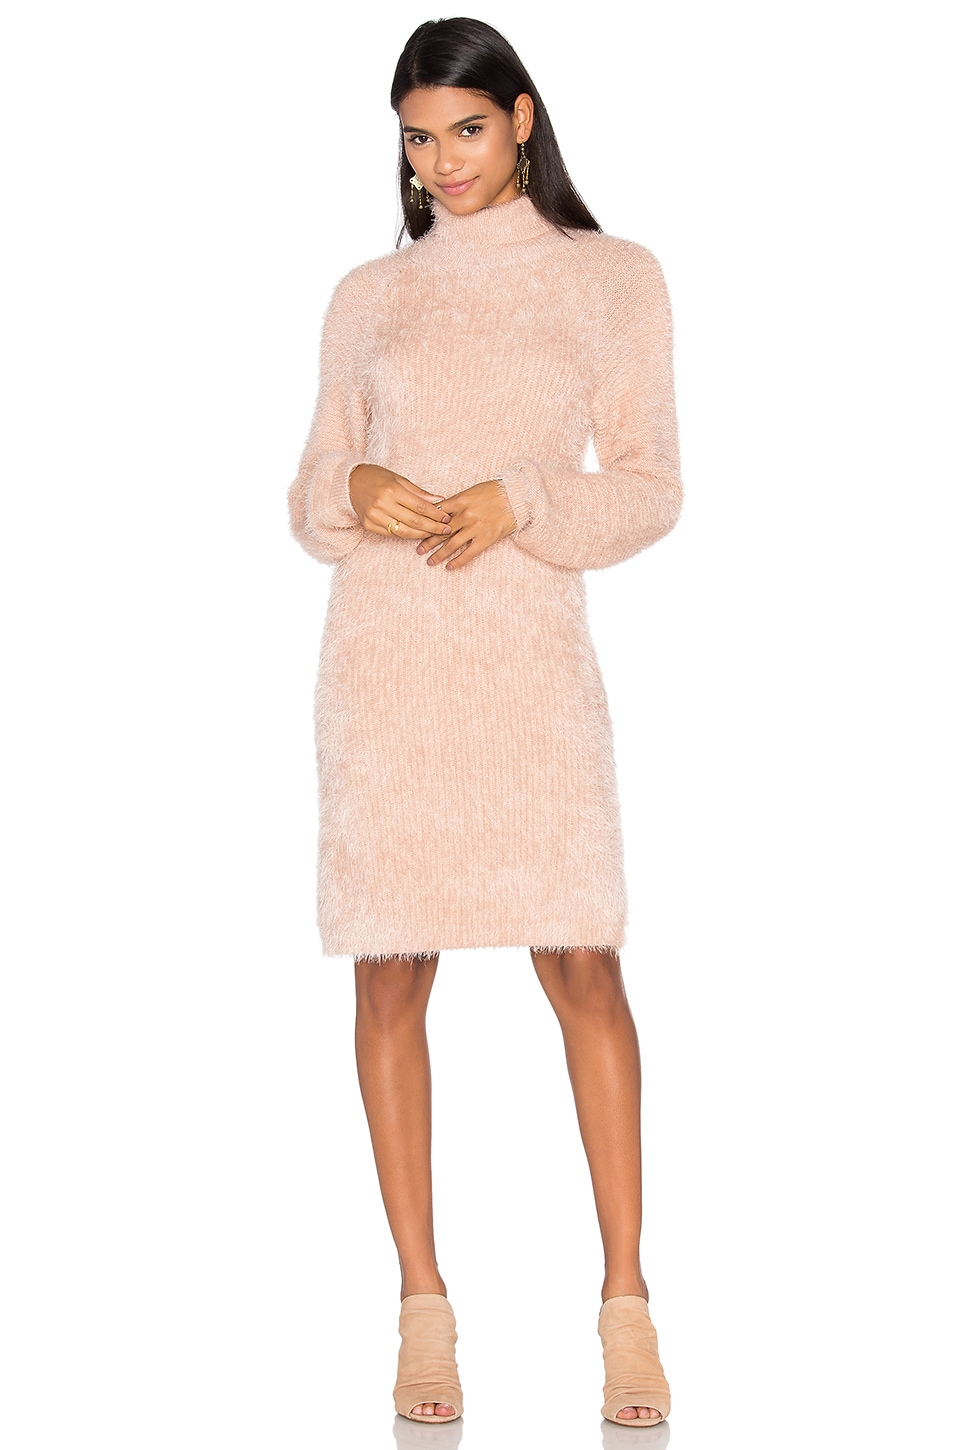 buy Soft Serve Sweater Dress by MINKPINK dresses online shopping